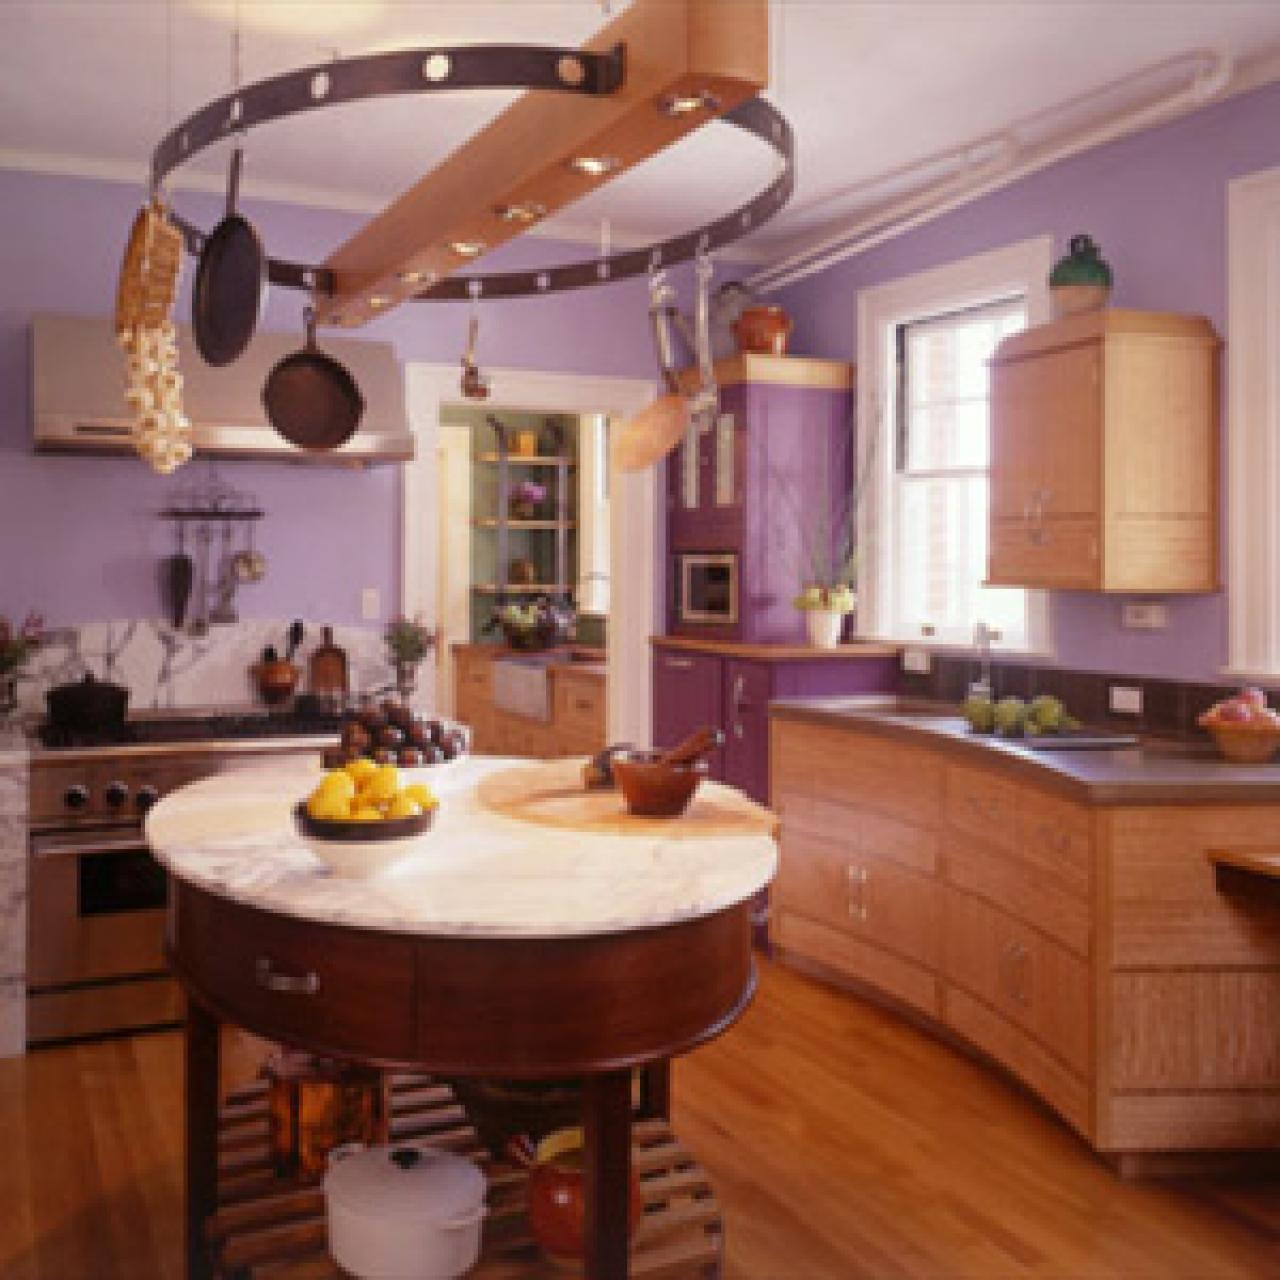 Diy Kitchen Remodel Ideas: Kitchen Design Ideas: An Interview With Johnny Grey